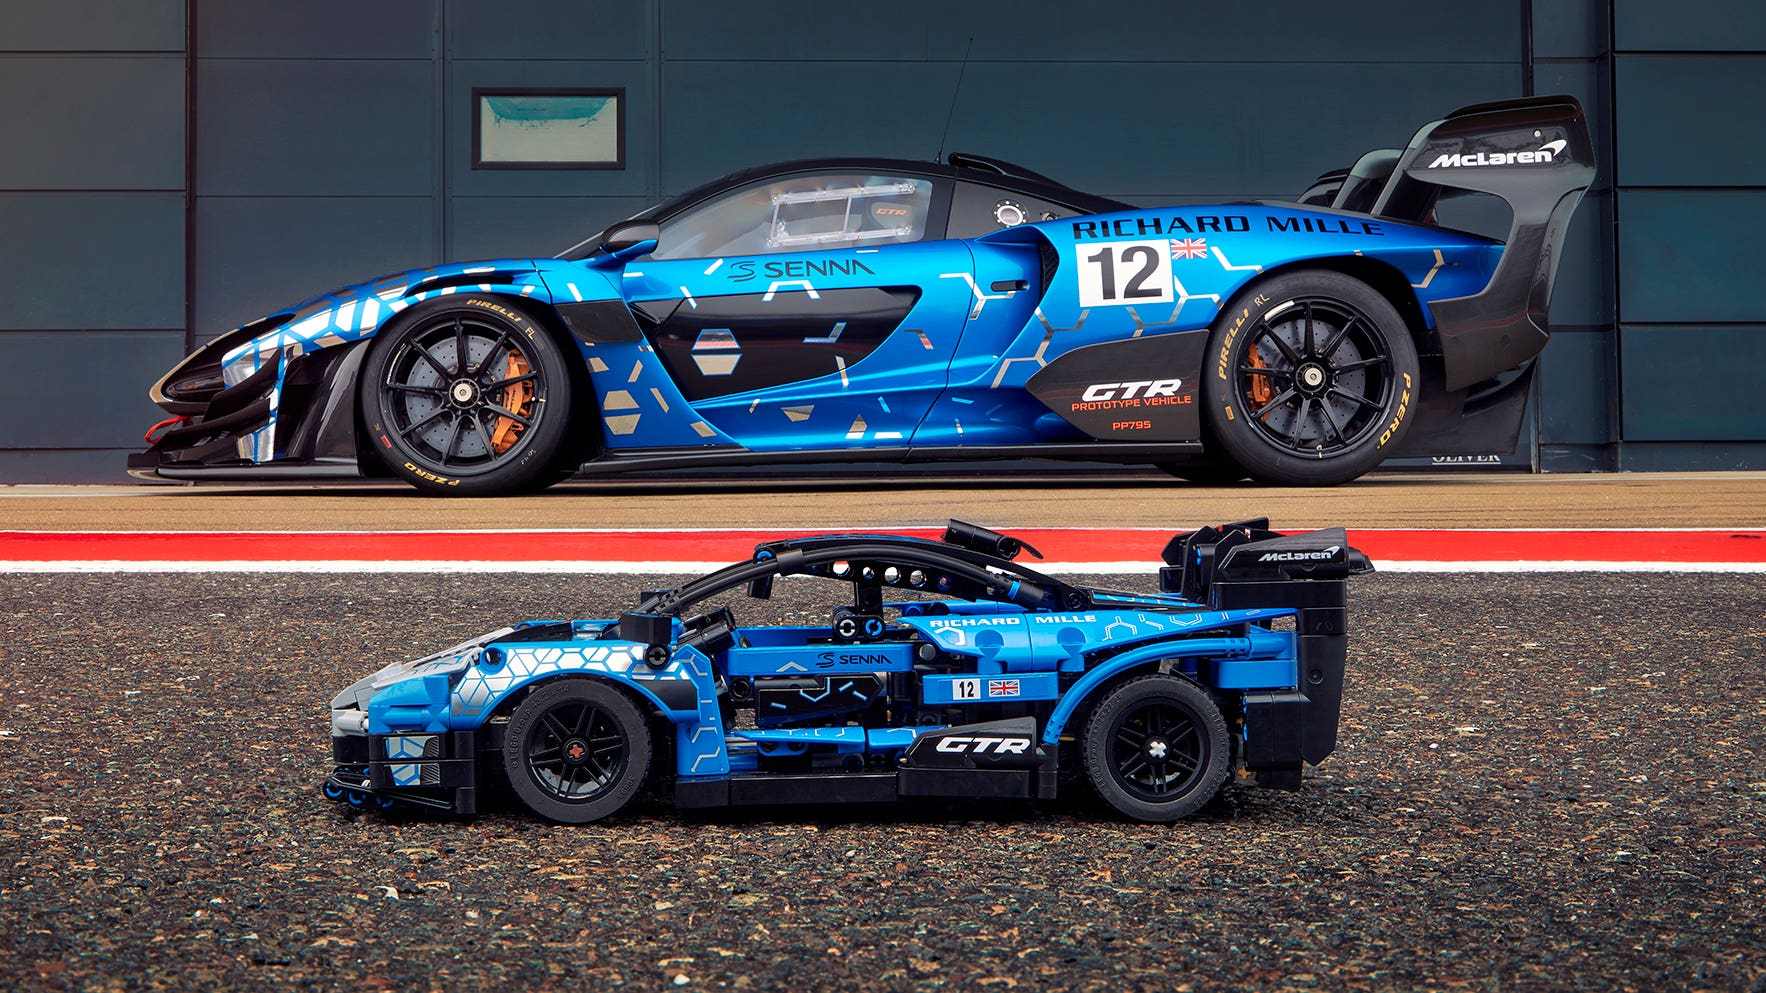 McLaren Senna GTR becomes latest Lego Technic addition